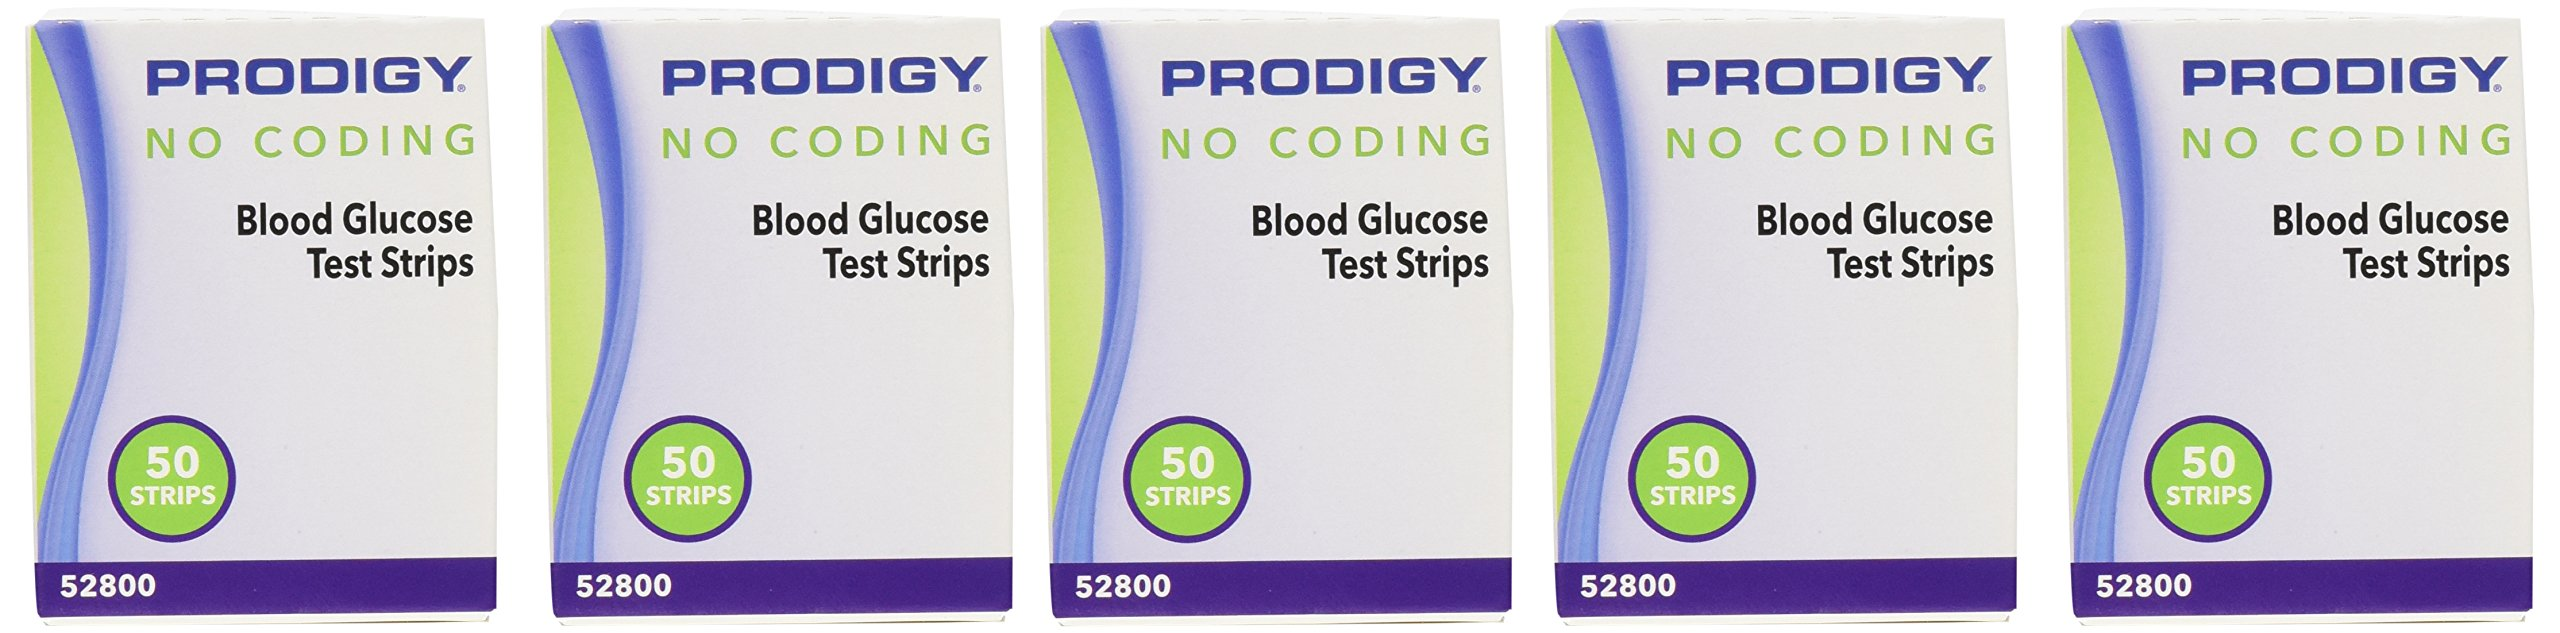 Prodigy Bundle Deal Savings 250 Ct Test Strips